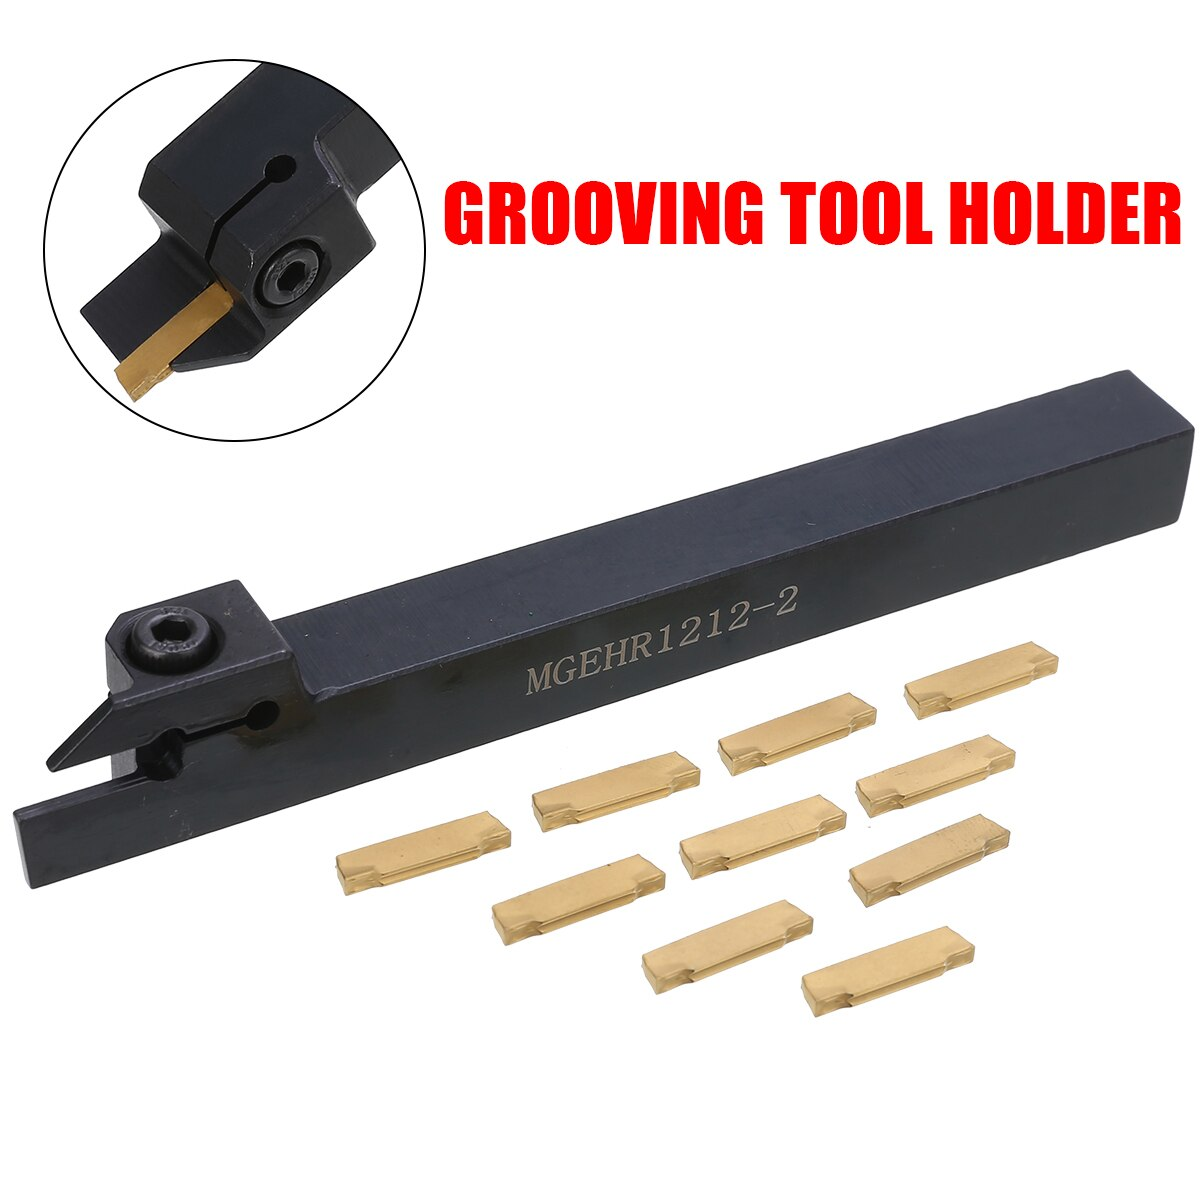 MGEHR1212-2 External Grooving Cut Off Blade Tool Holder Lathe Parting Turning Tool Holder 10pcs MGMN200 Carbide Inserts L Wrench